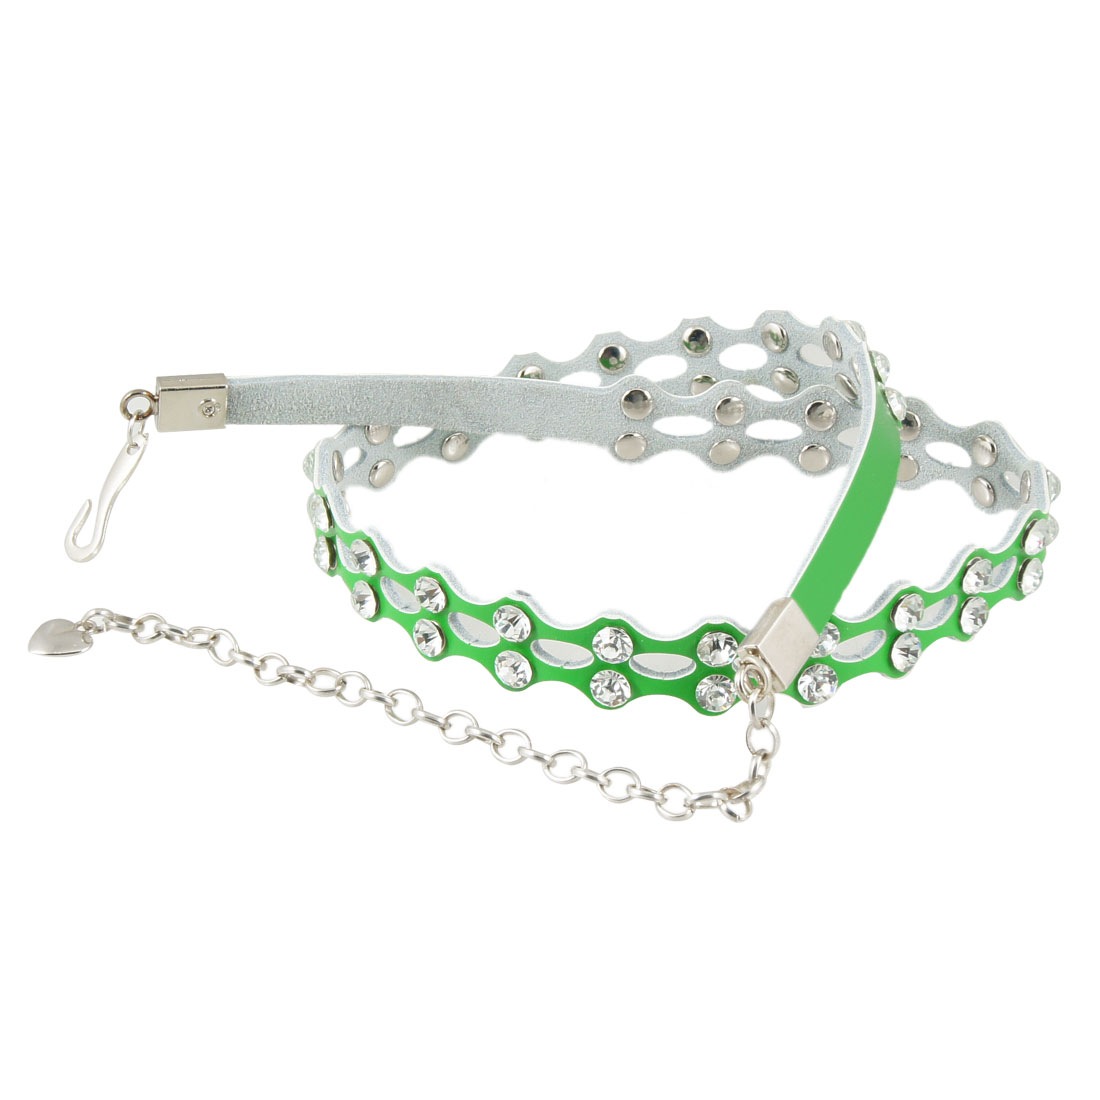 Women Hook Buckle Rhinestones Detailing Skinny Faux Leather Green Waist Chain